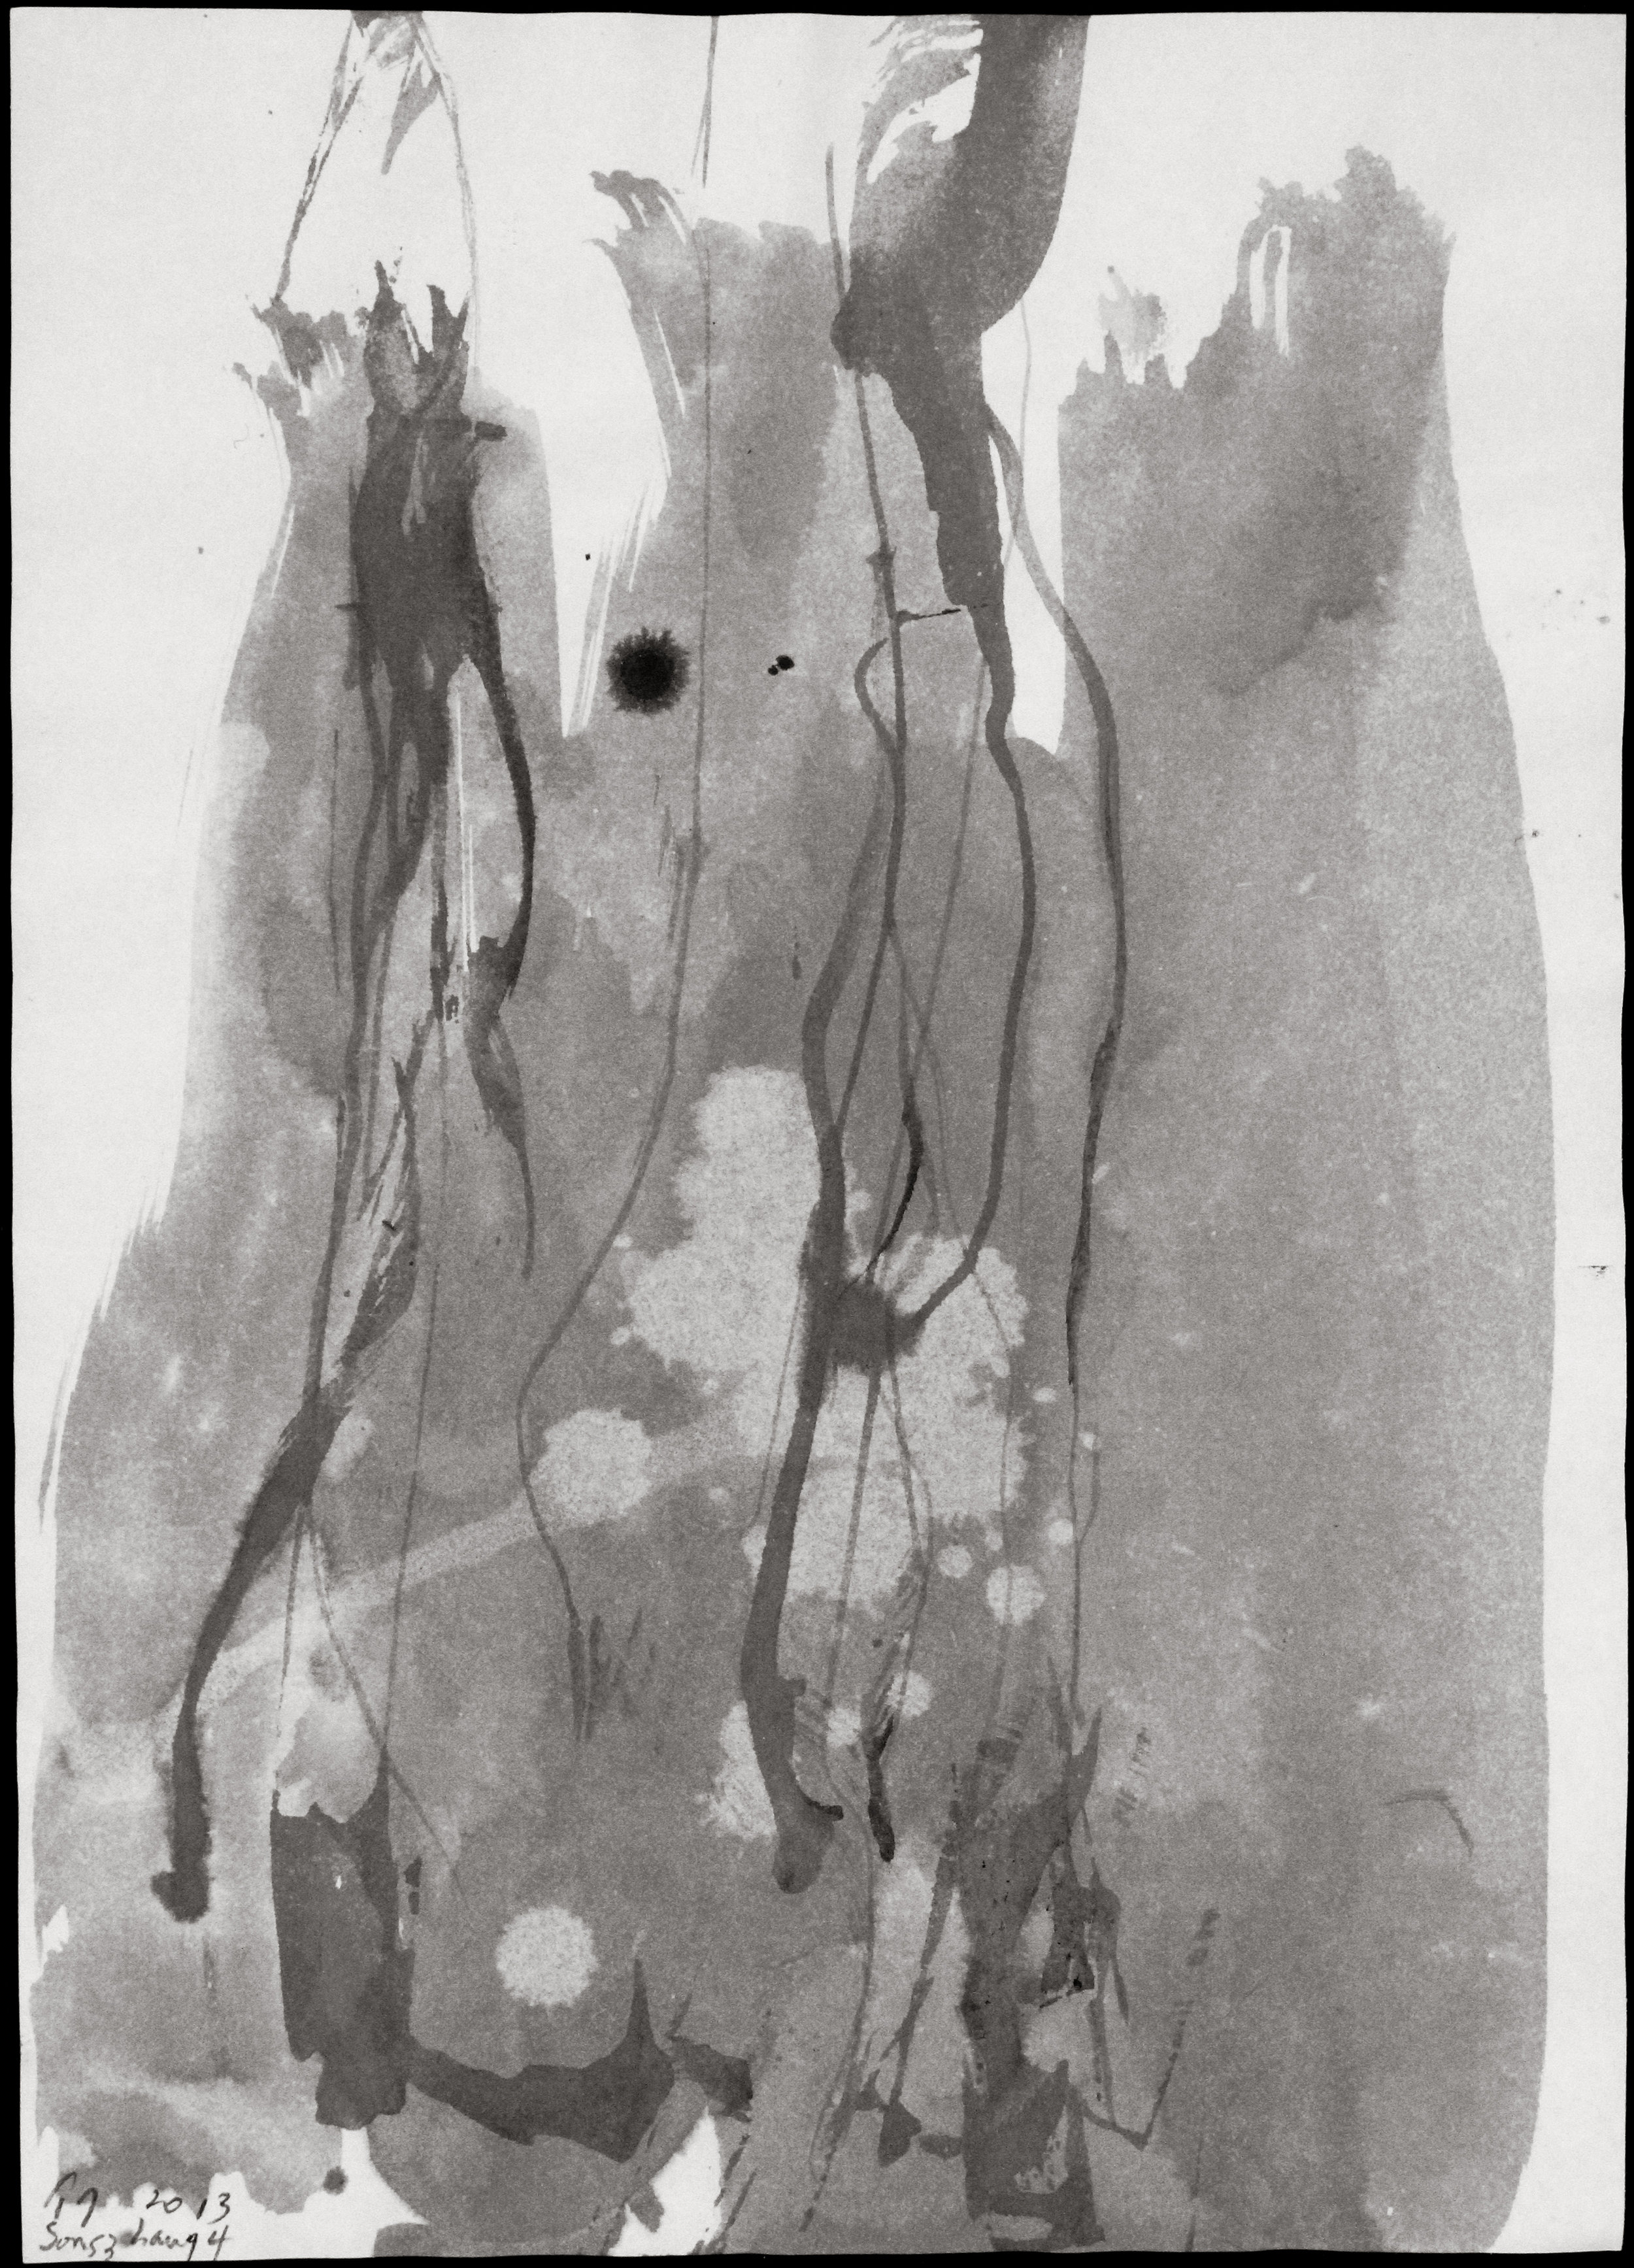 Songzhuang 4, 2013, Ink on Rice Paper, 21 in x 16 in